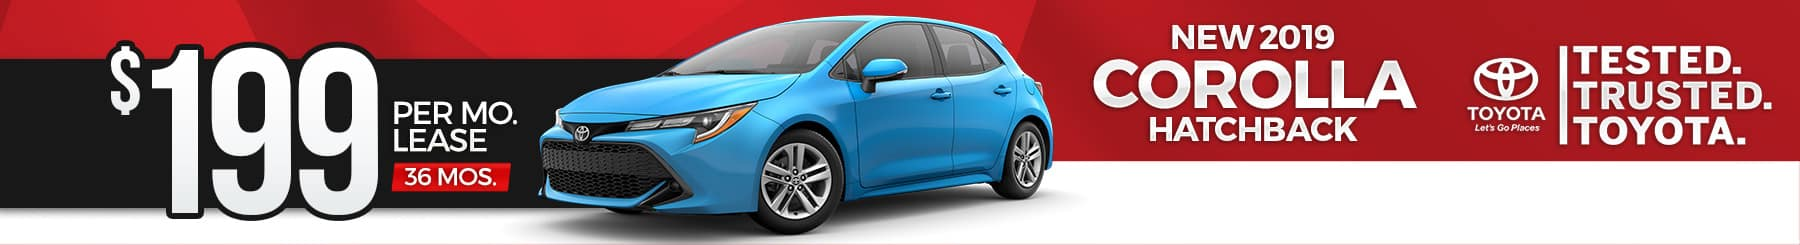 Toyota-Corolla-Hatchback-Lease-Special